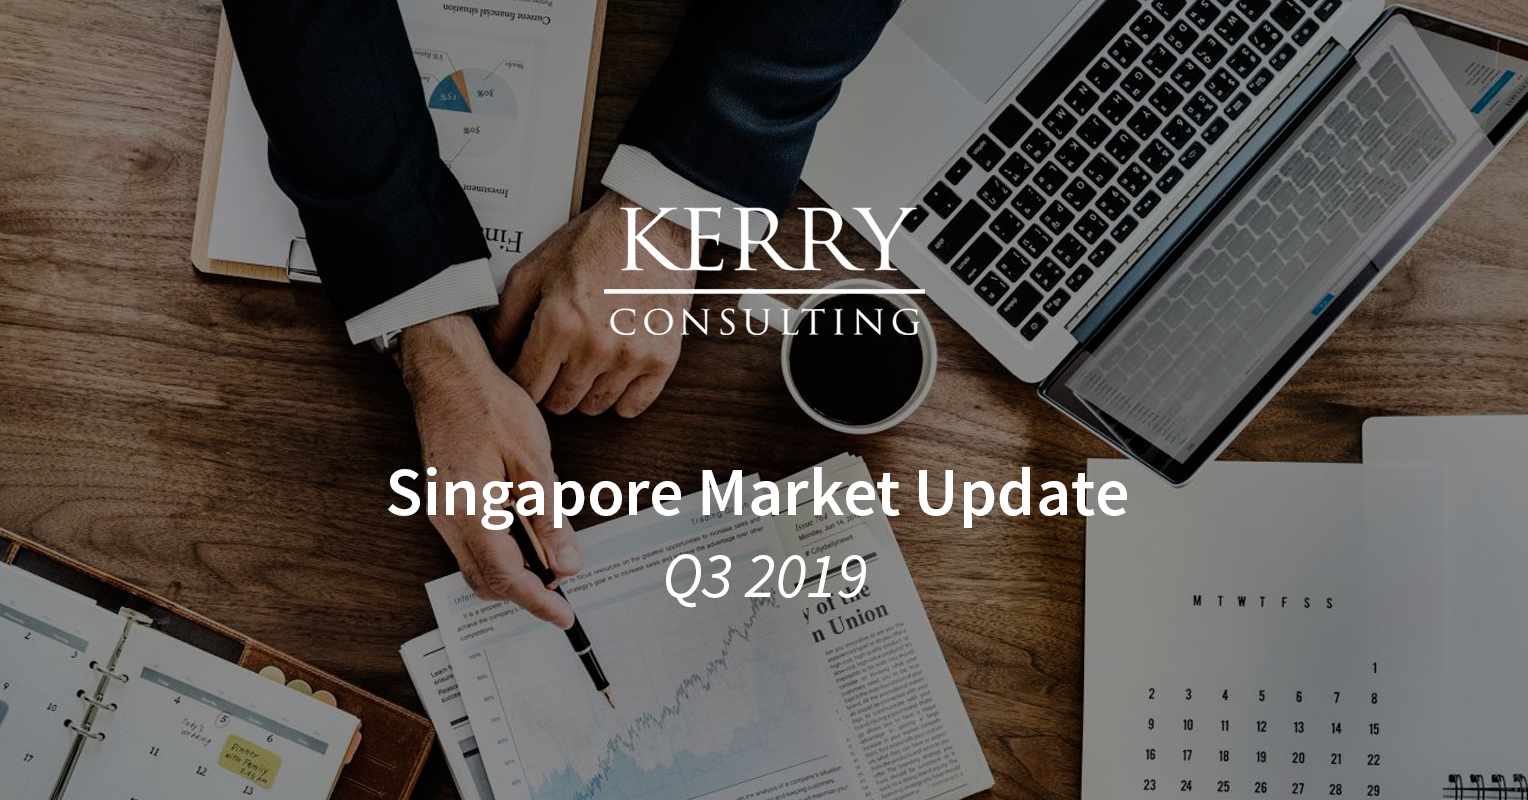 Kerry's Singapore Market Update Q3 2019